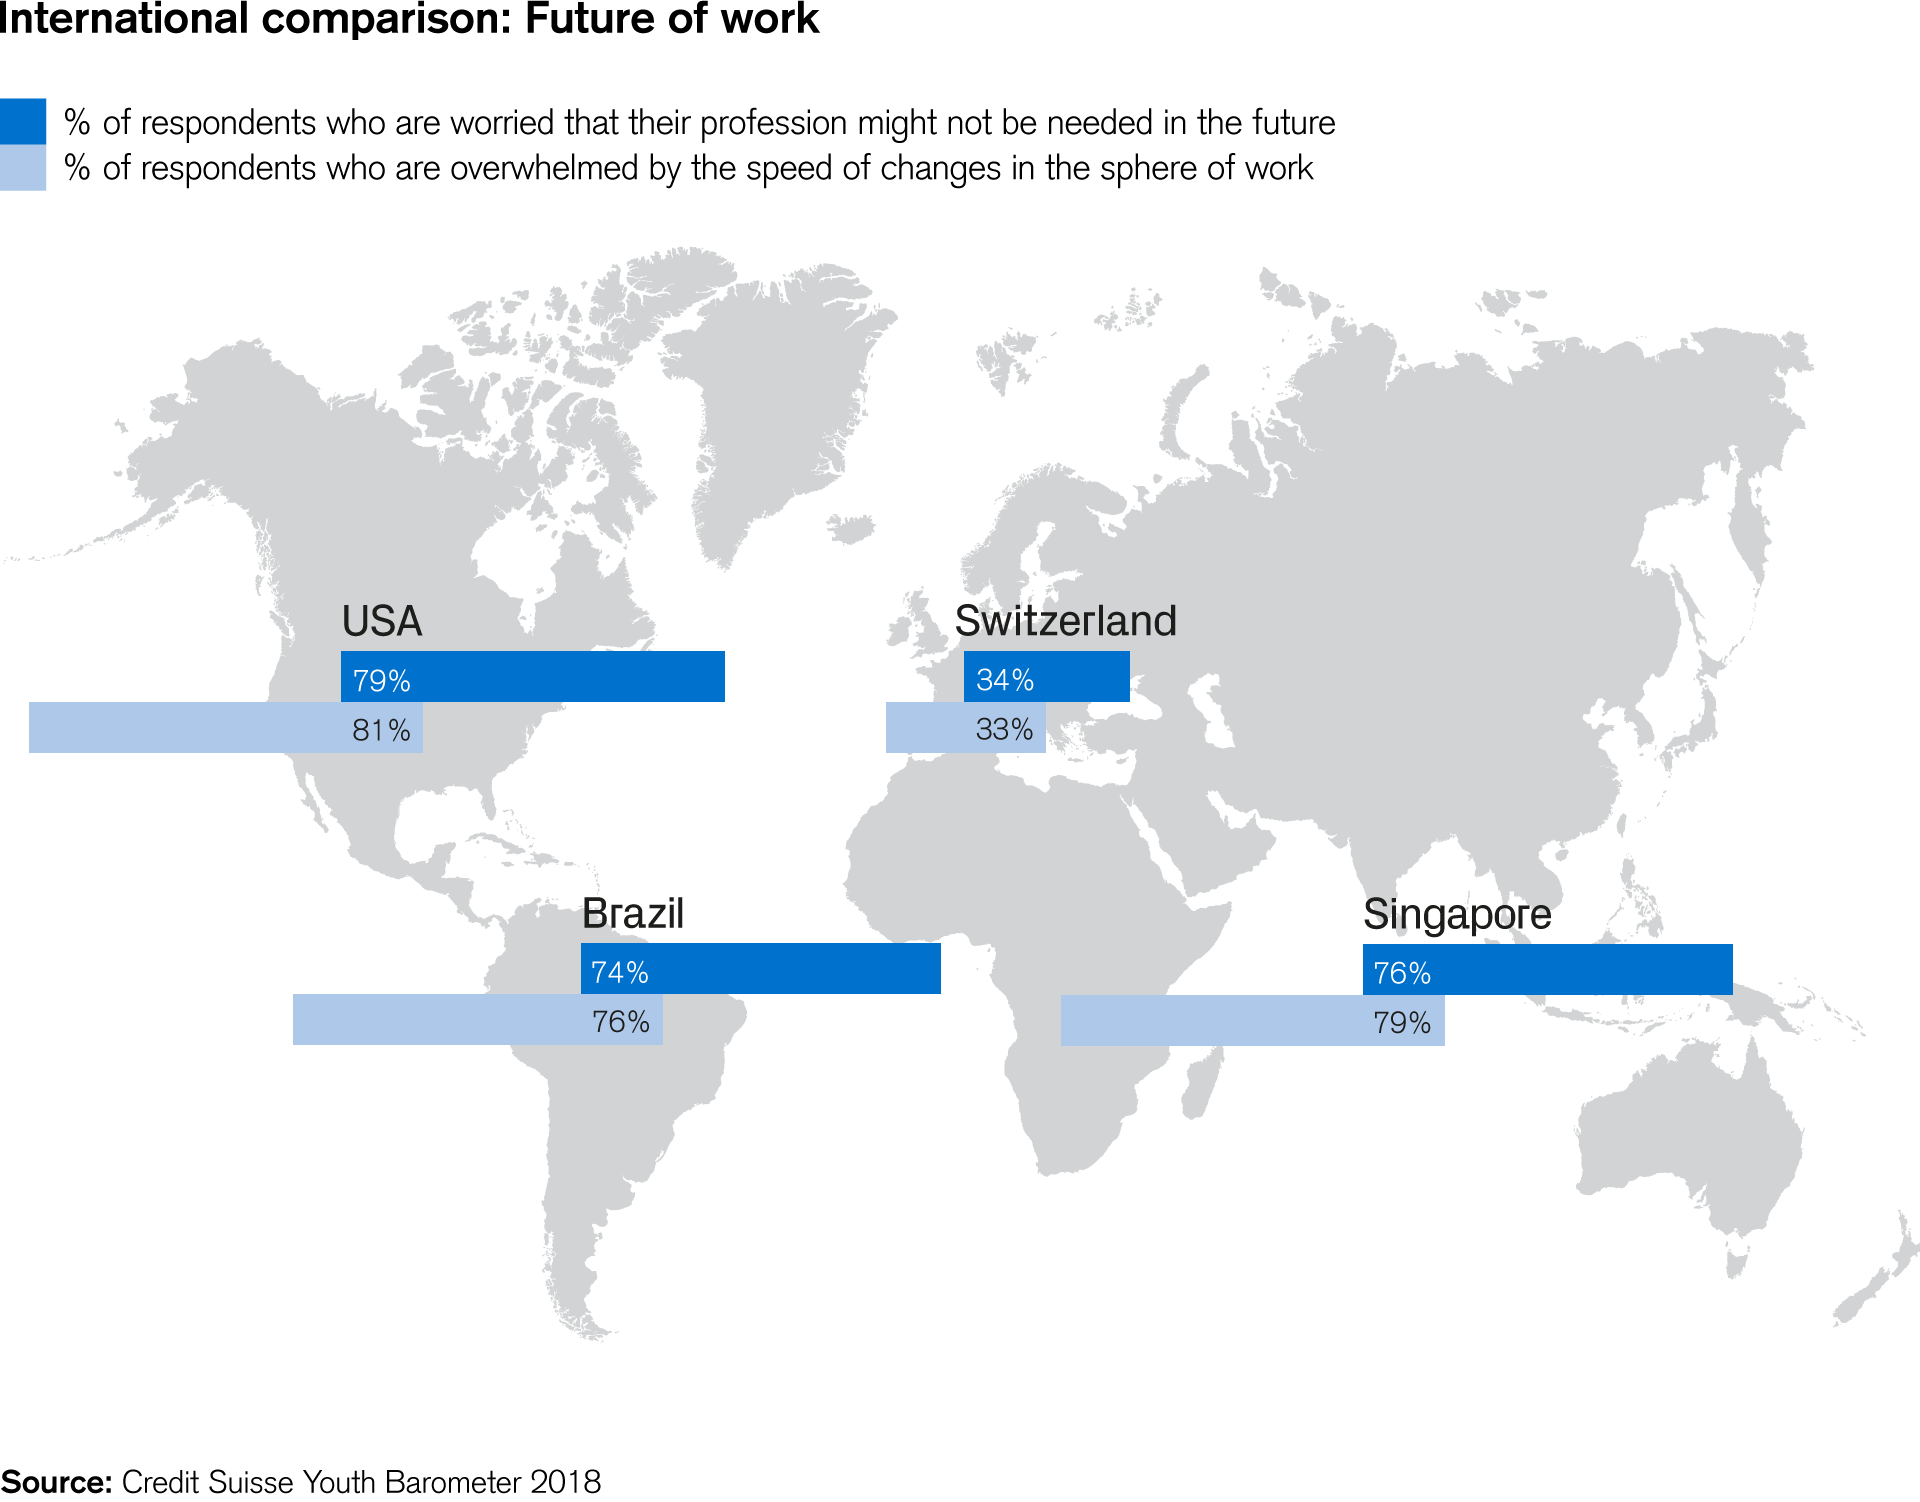 International comparison: Future of work